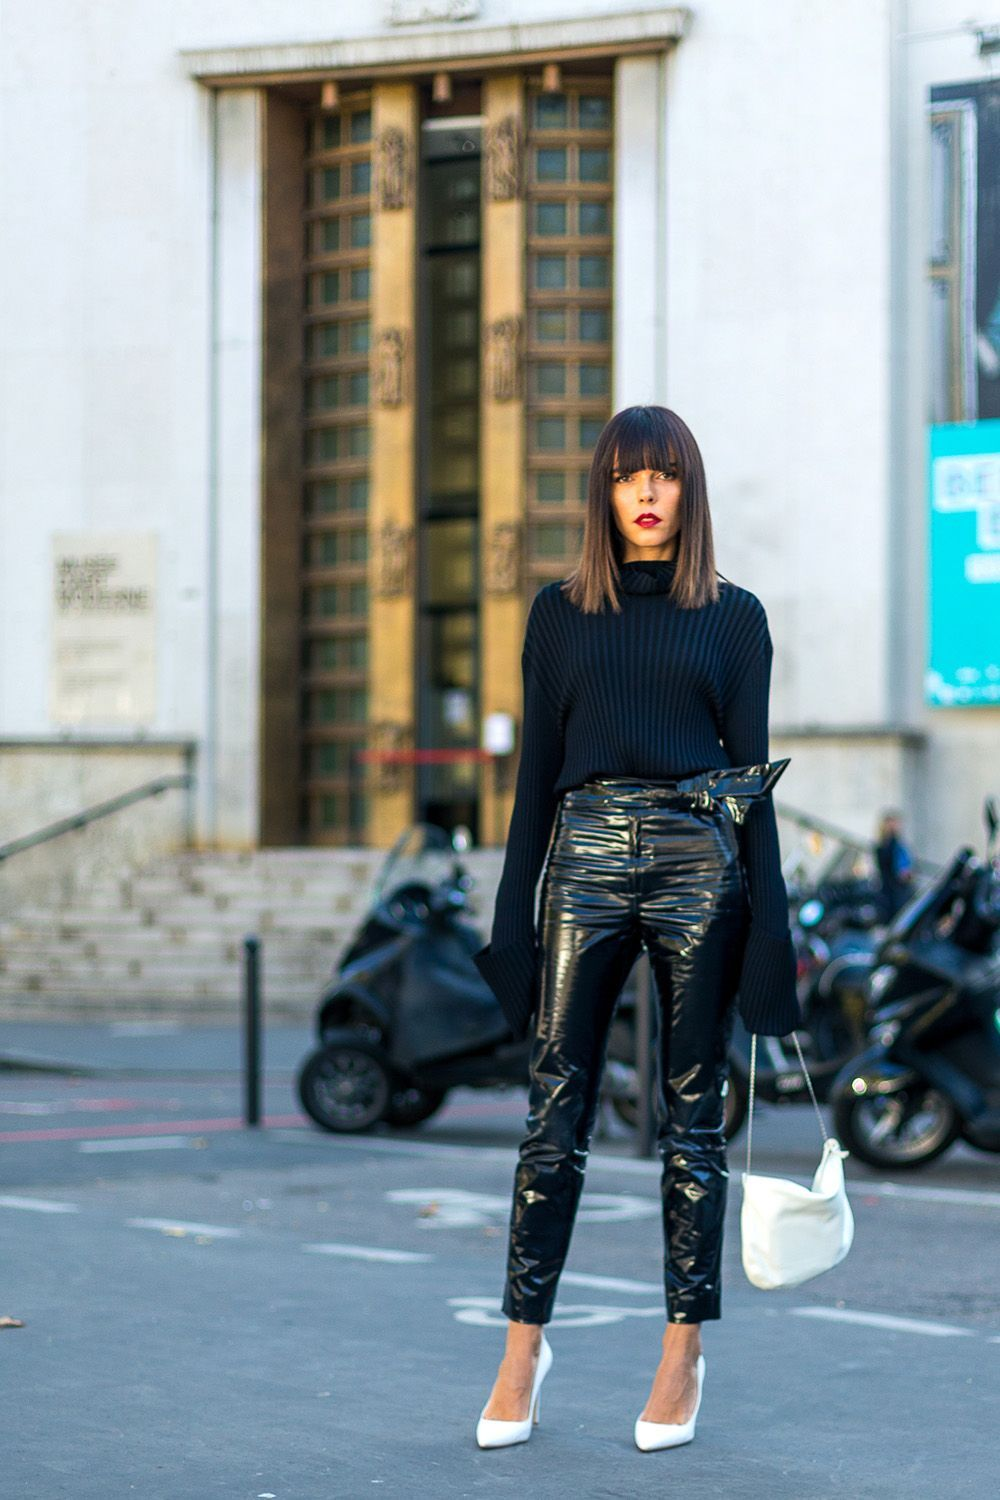 Best Street Style at Paris Fashion Week Evangelie Smyrniotaki in a black top, black patent leather pants and white pumps and purse.Fancy pants  Fancy pants may refer to: